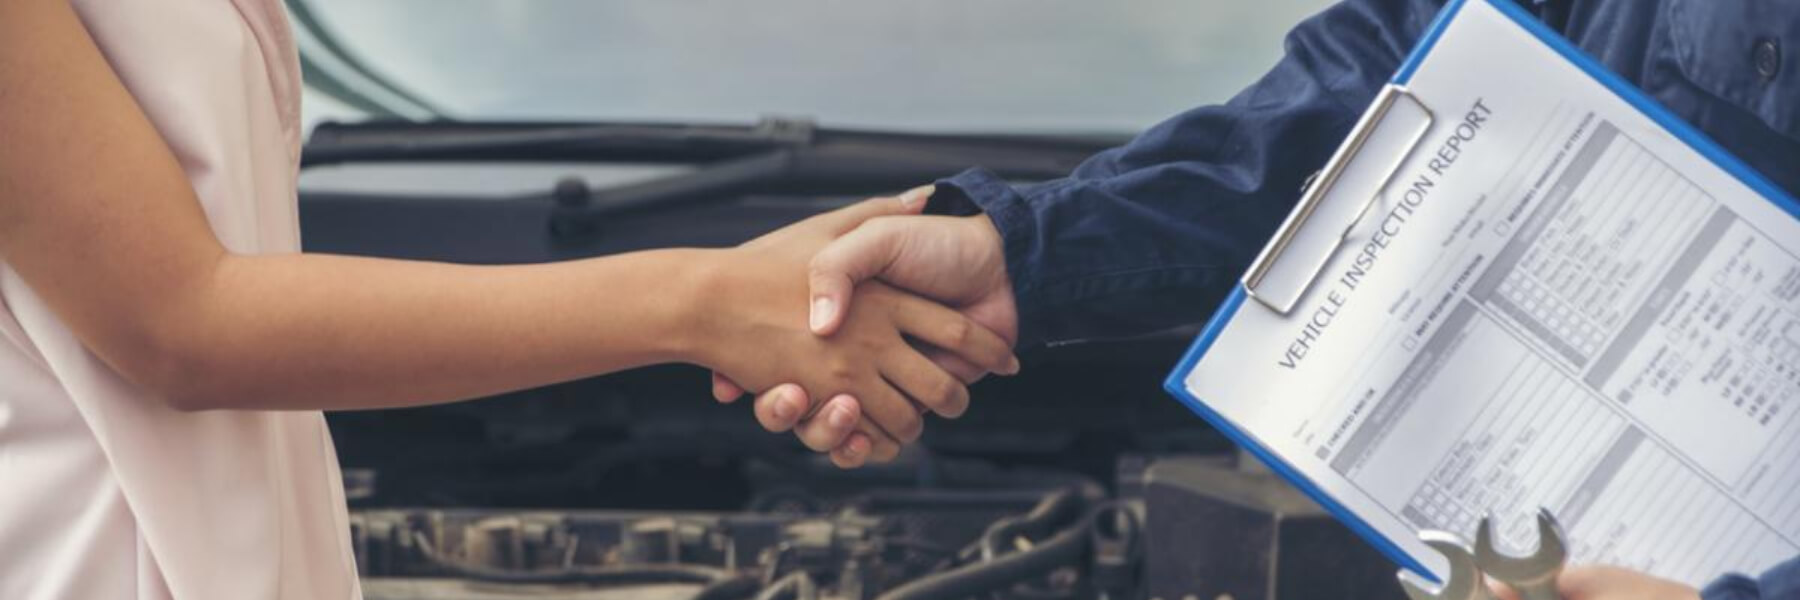 car owner and technician shaking hands